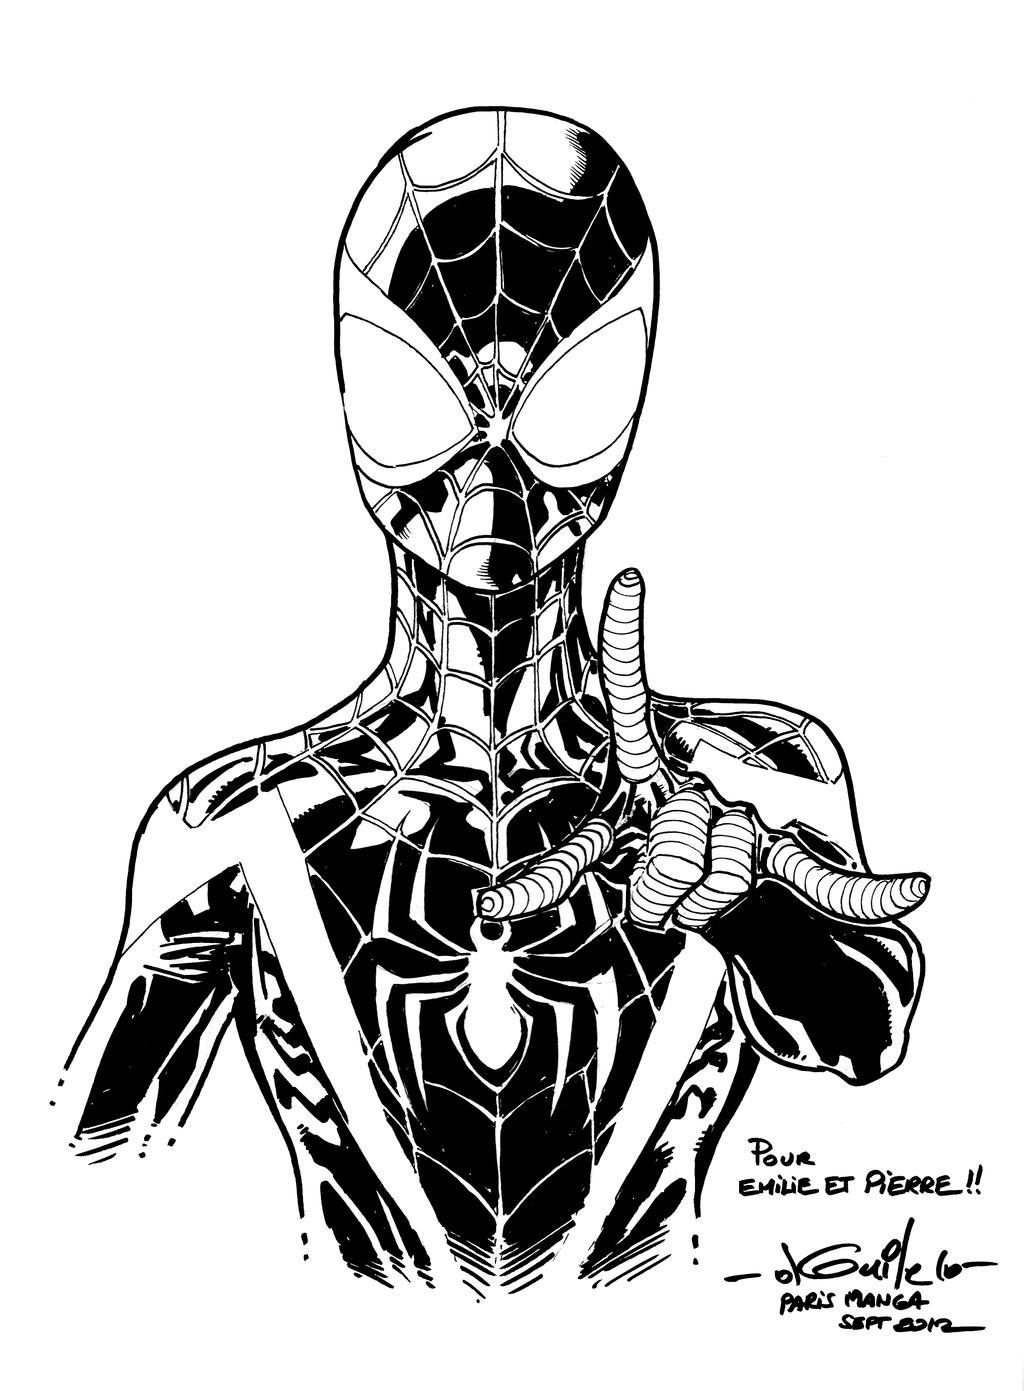 spiderman coloring pages miles morales | Miles Morales Spider Man Coloring Pages Sketch Coloring Page